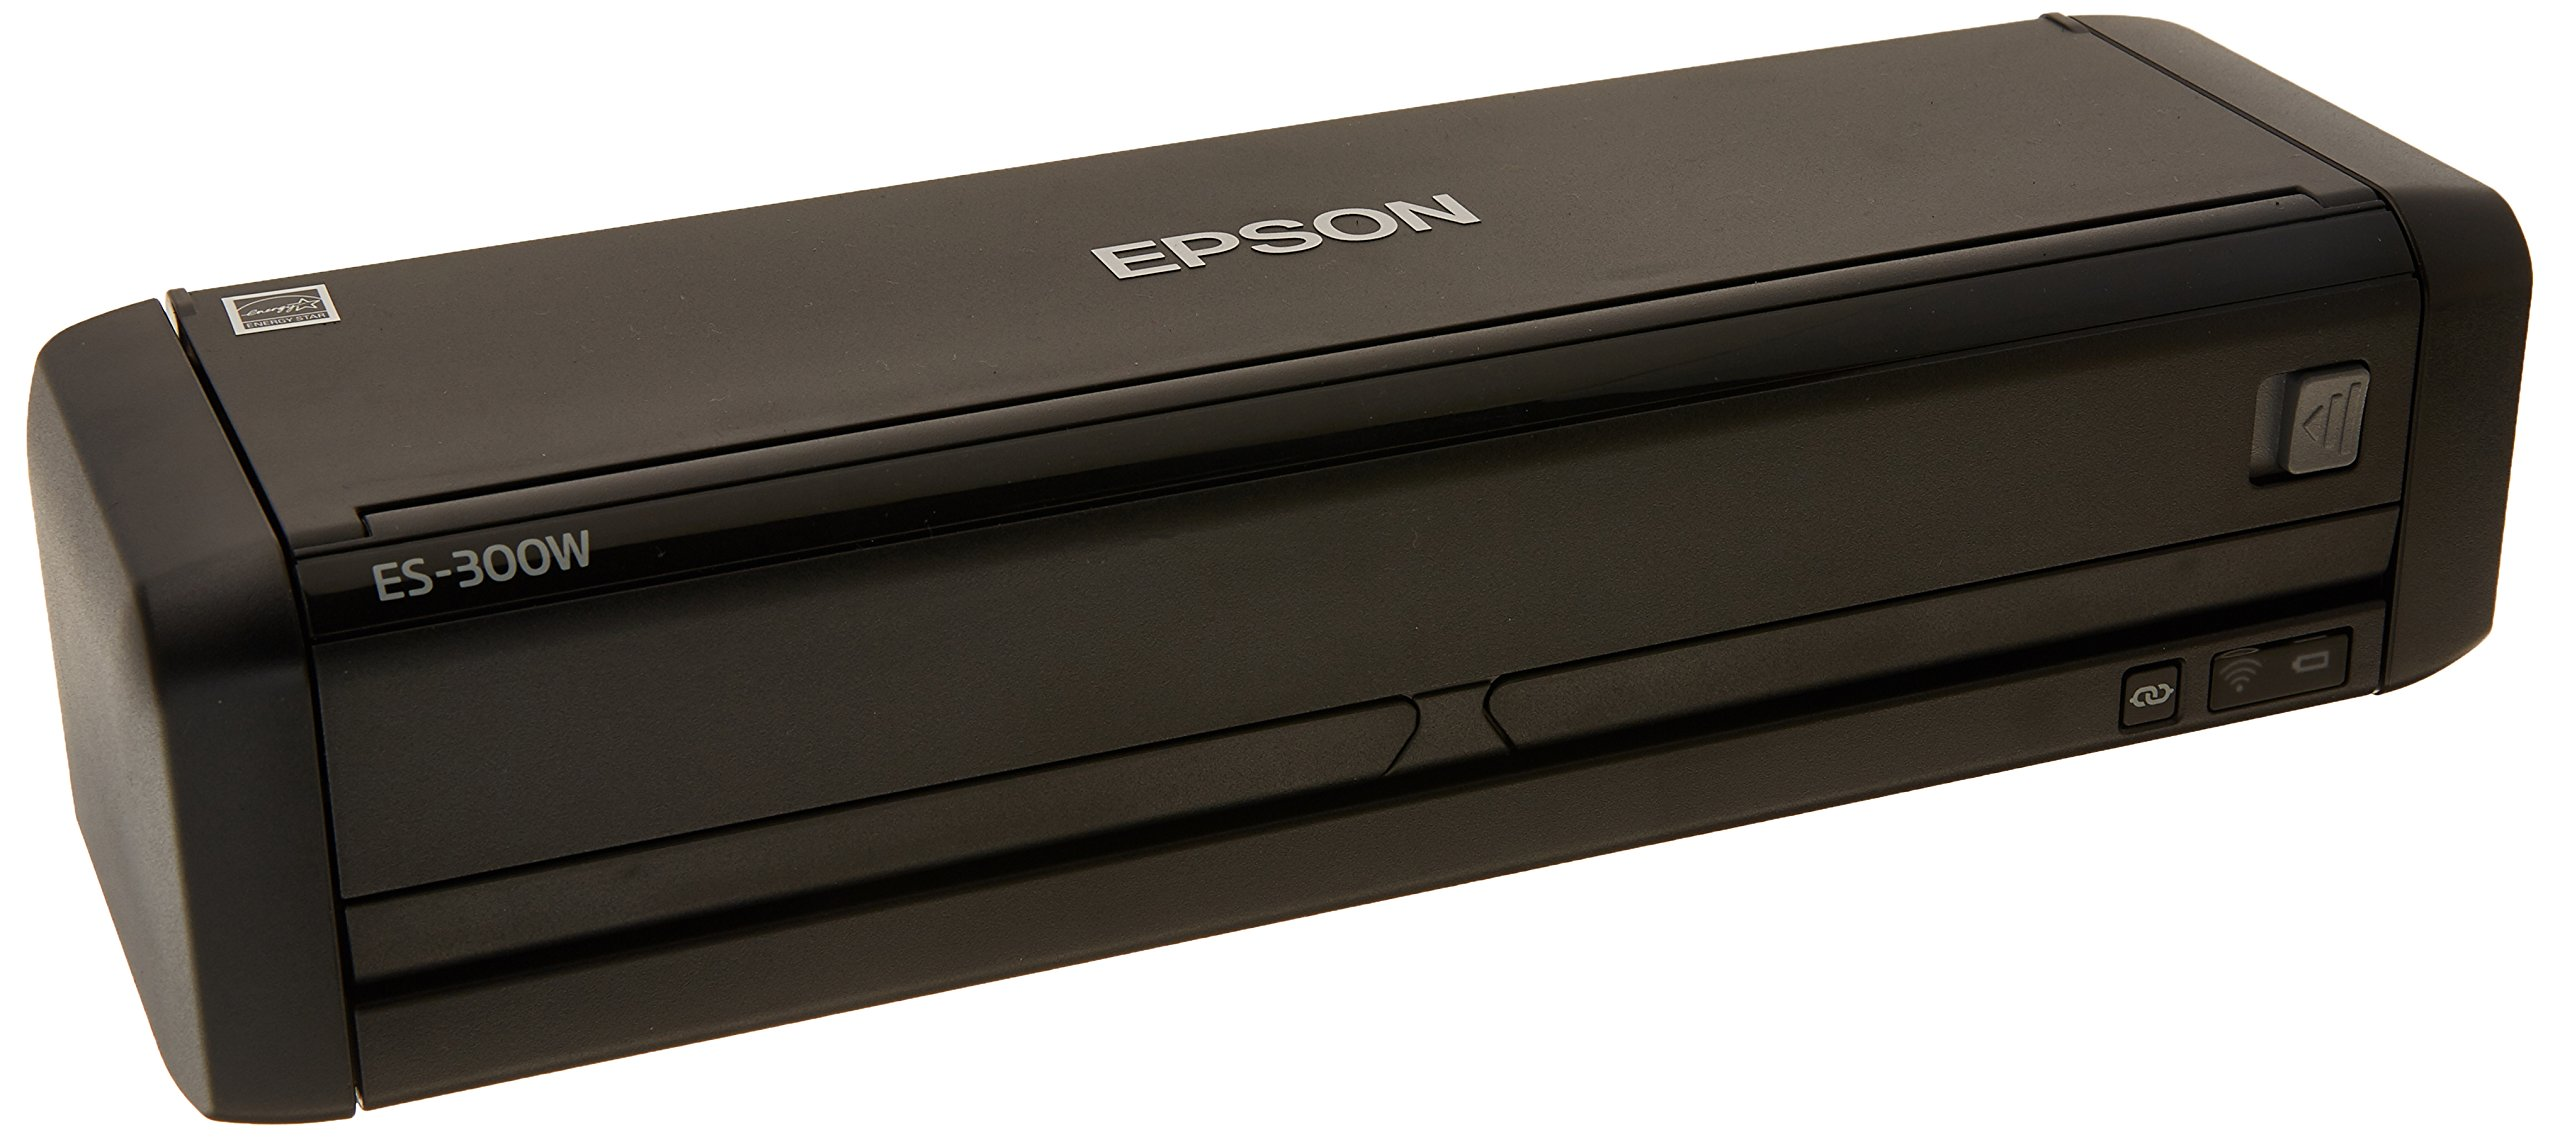 Epson Workforce ES-300W Wireless Color Portable Document Scanner with ADF for PC and Mac, Sheet-fed and Duplex Scanning (Renewed)